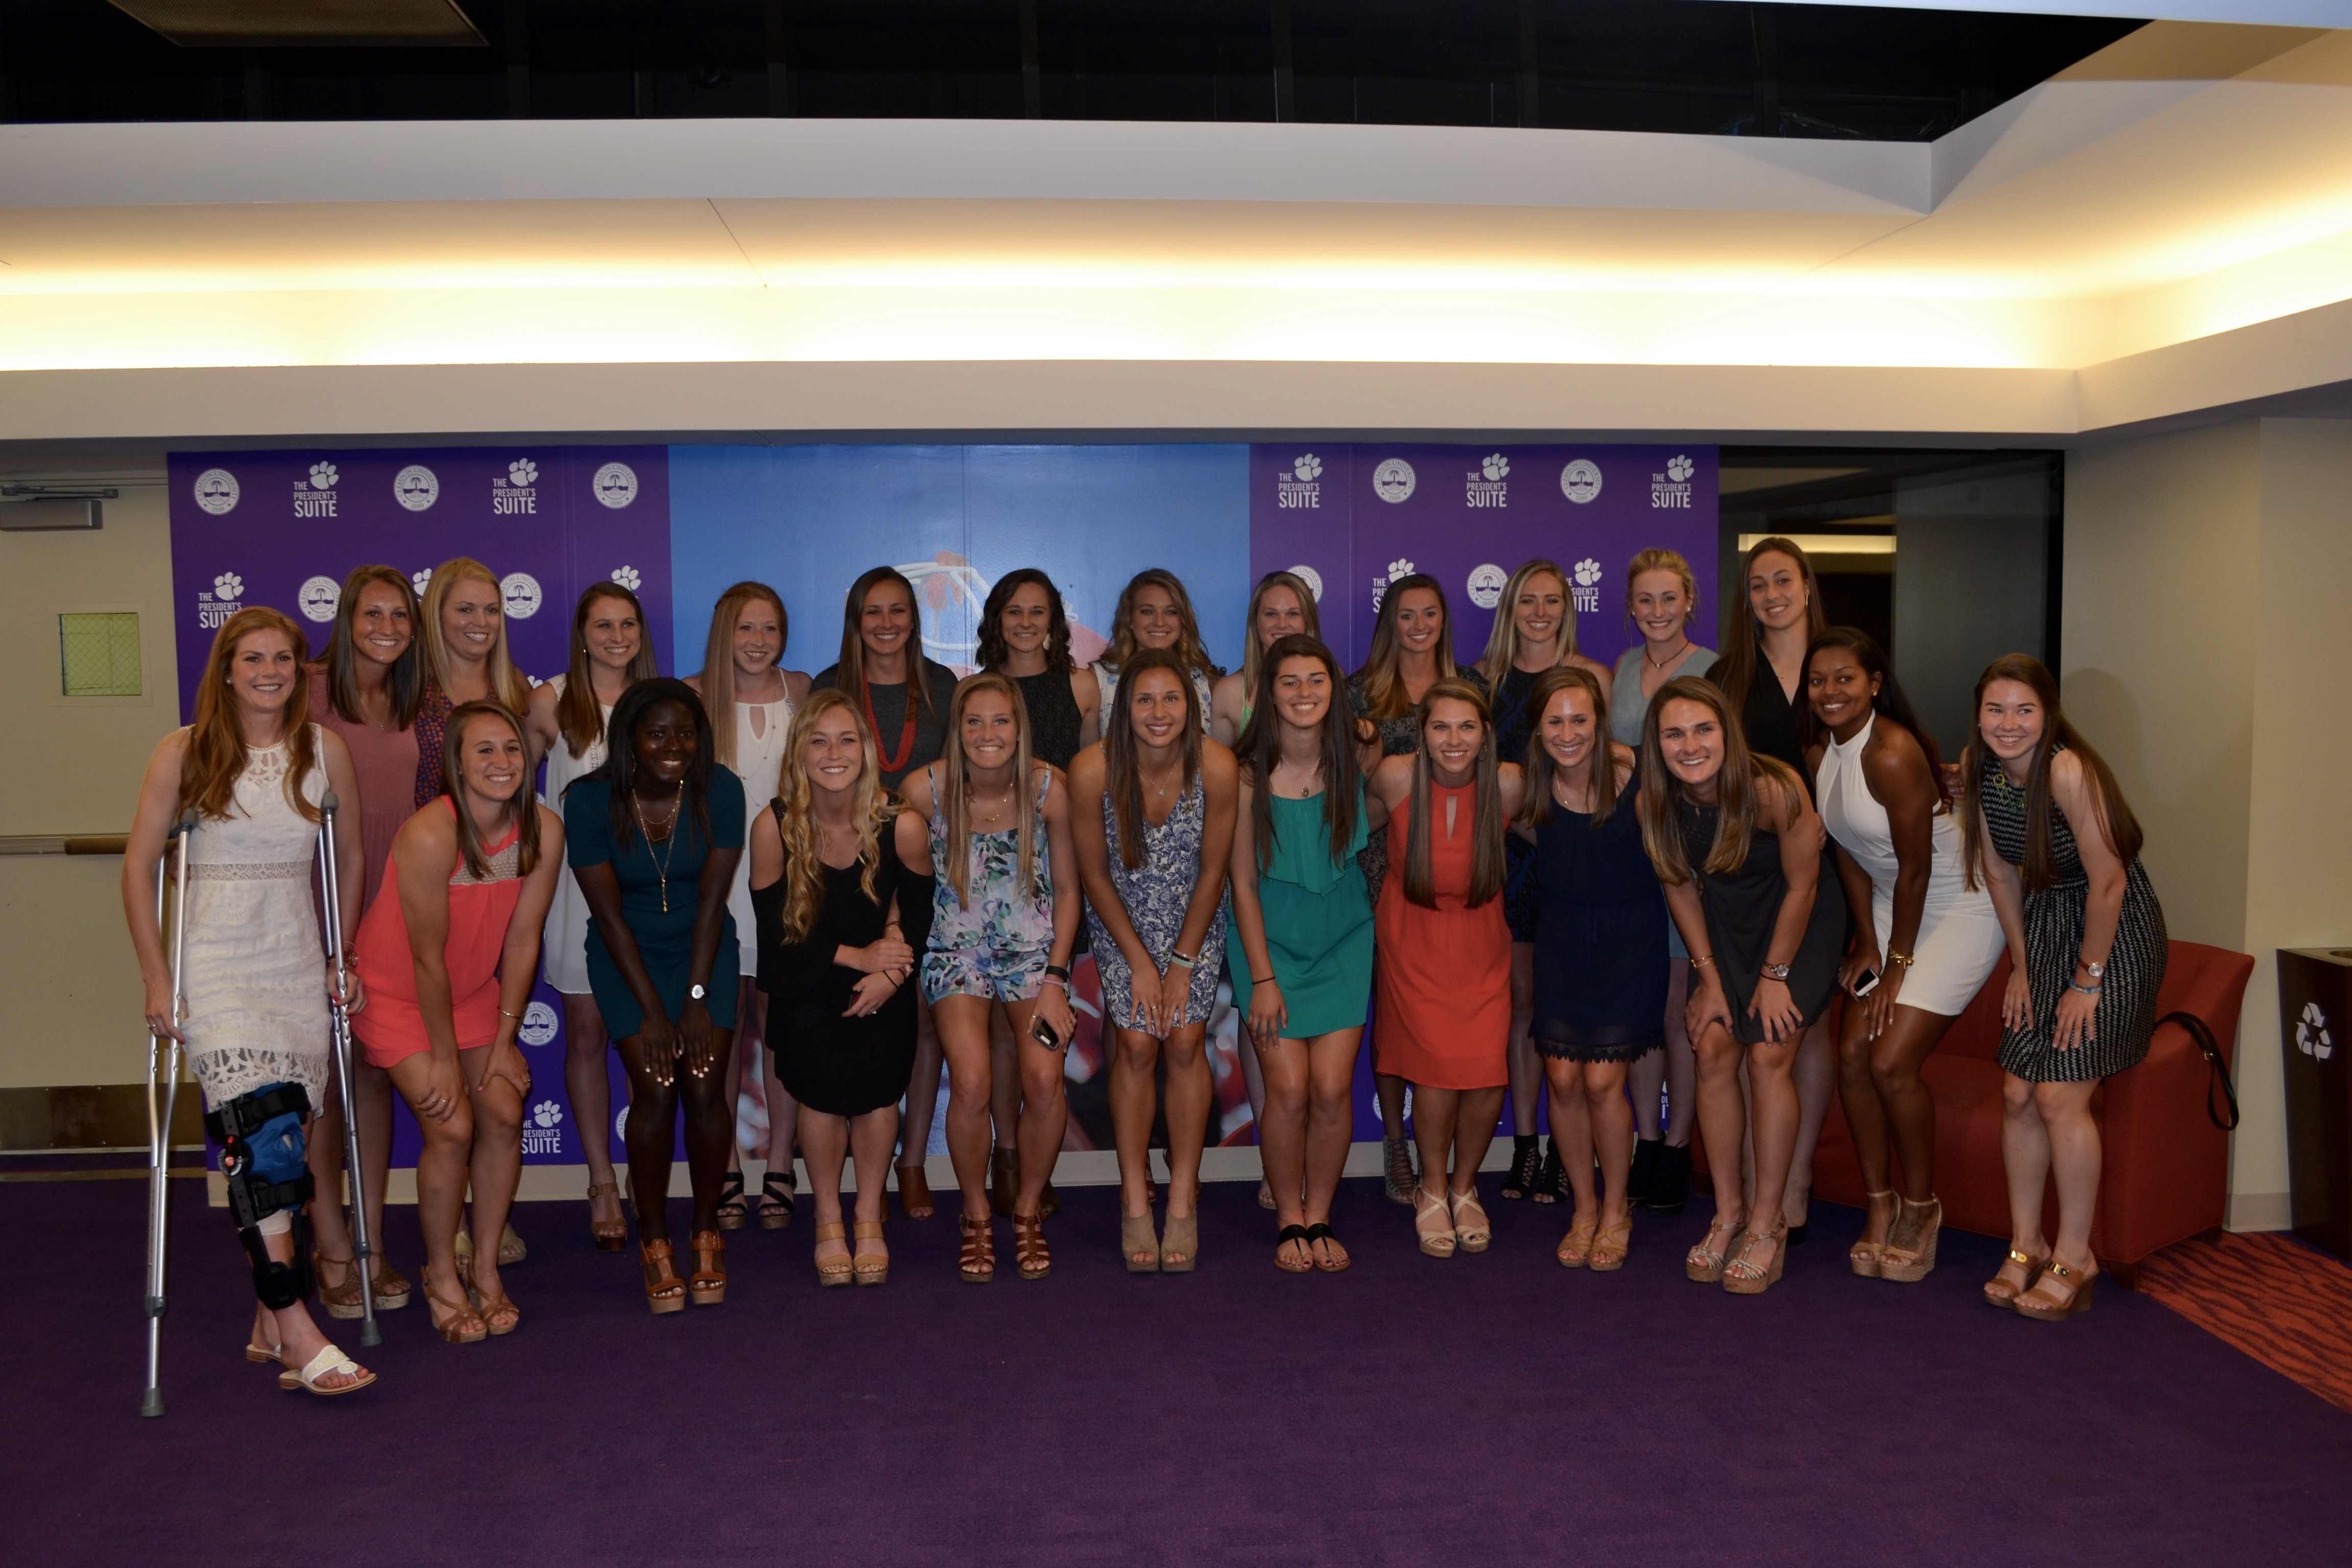 Clemson Women?s Soccer Program Celebrates Successful Season